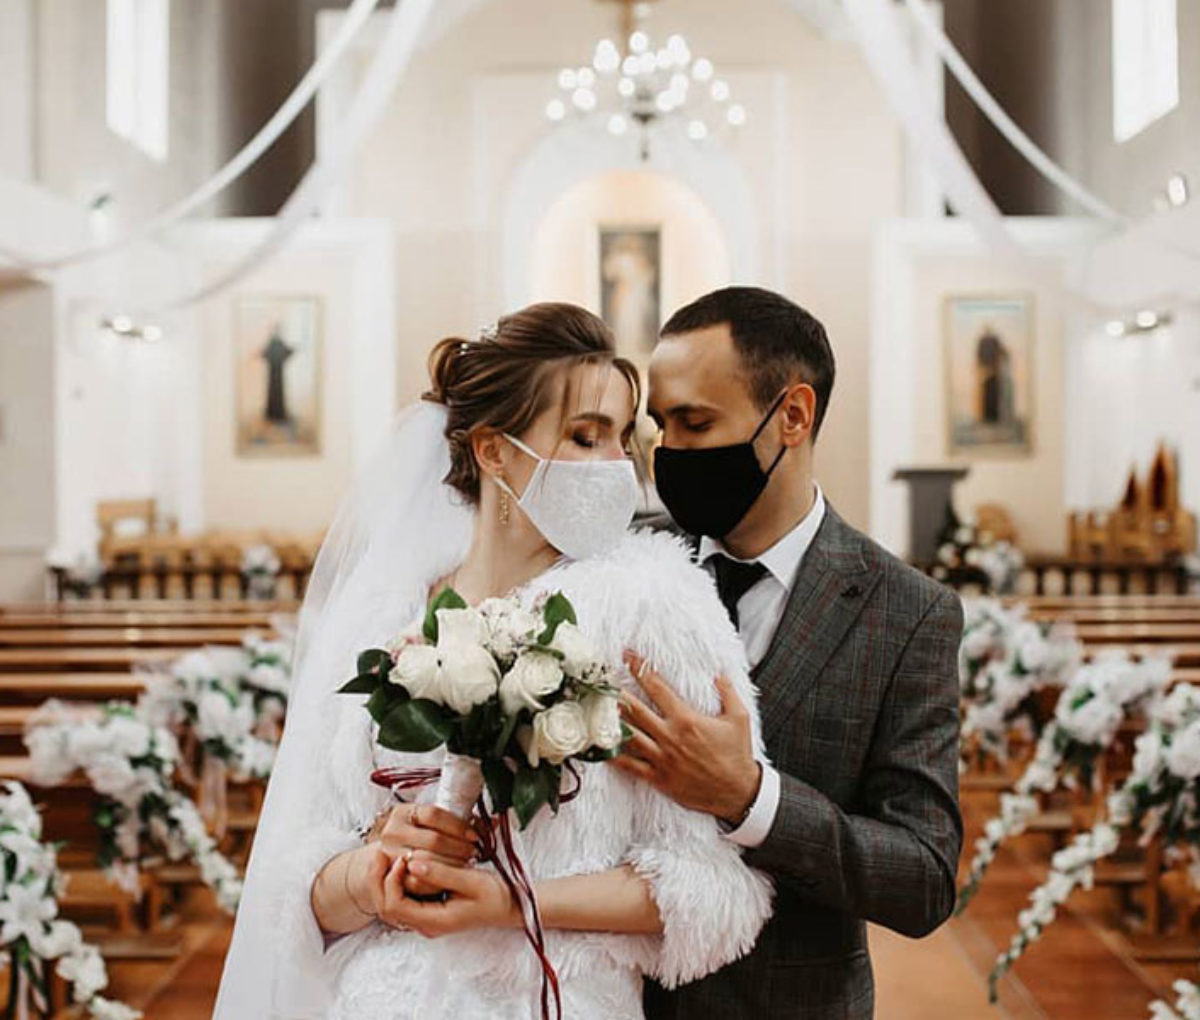 10 New Trends That Will Reshape Weddings In The Post-Pandemic World